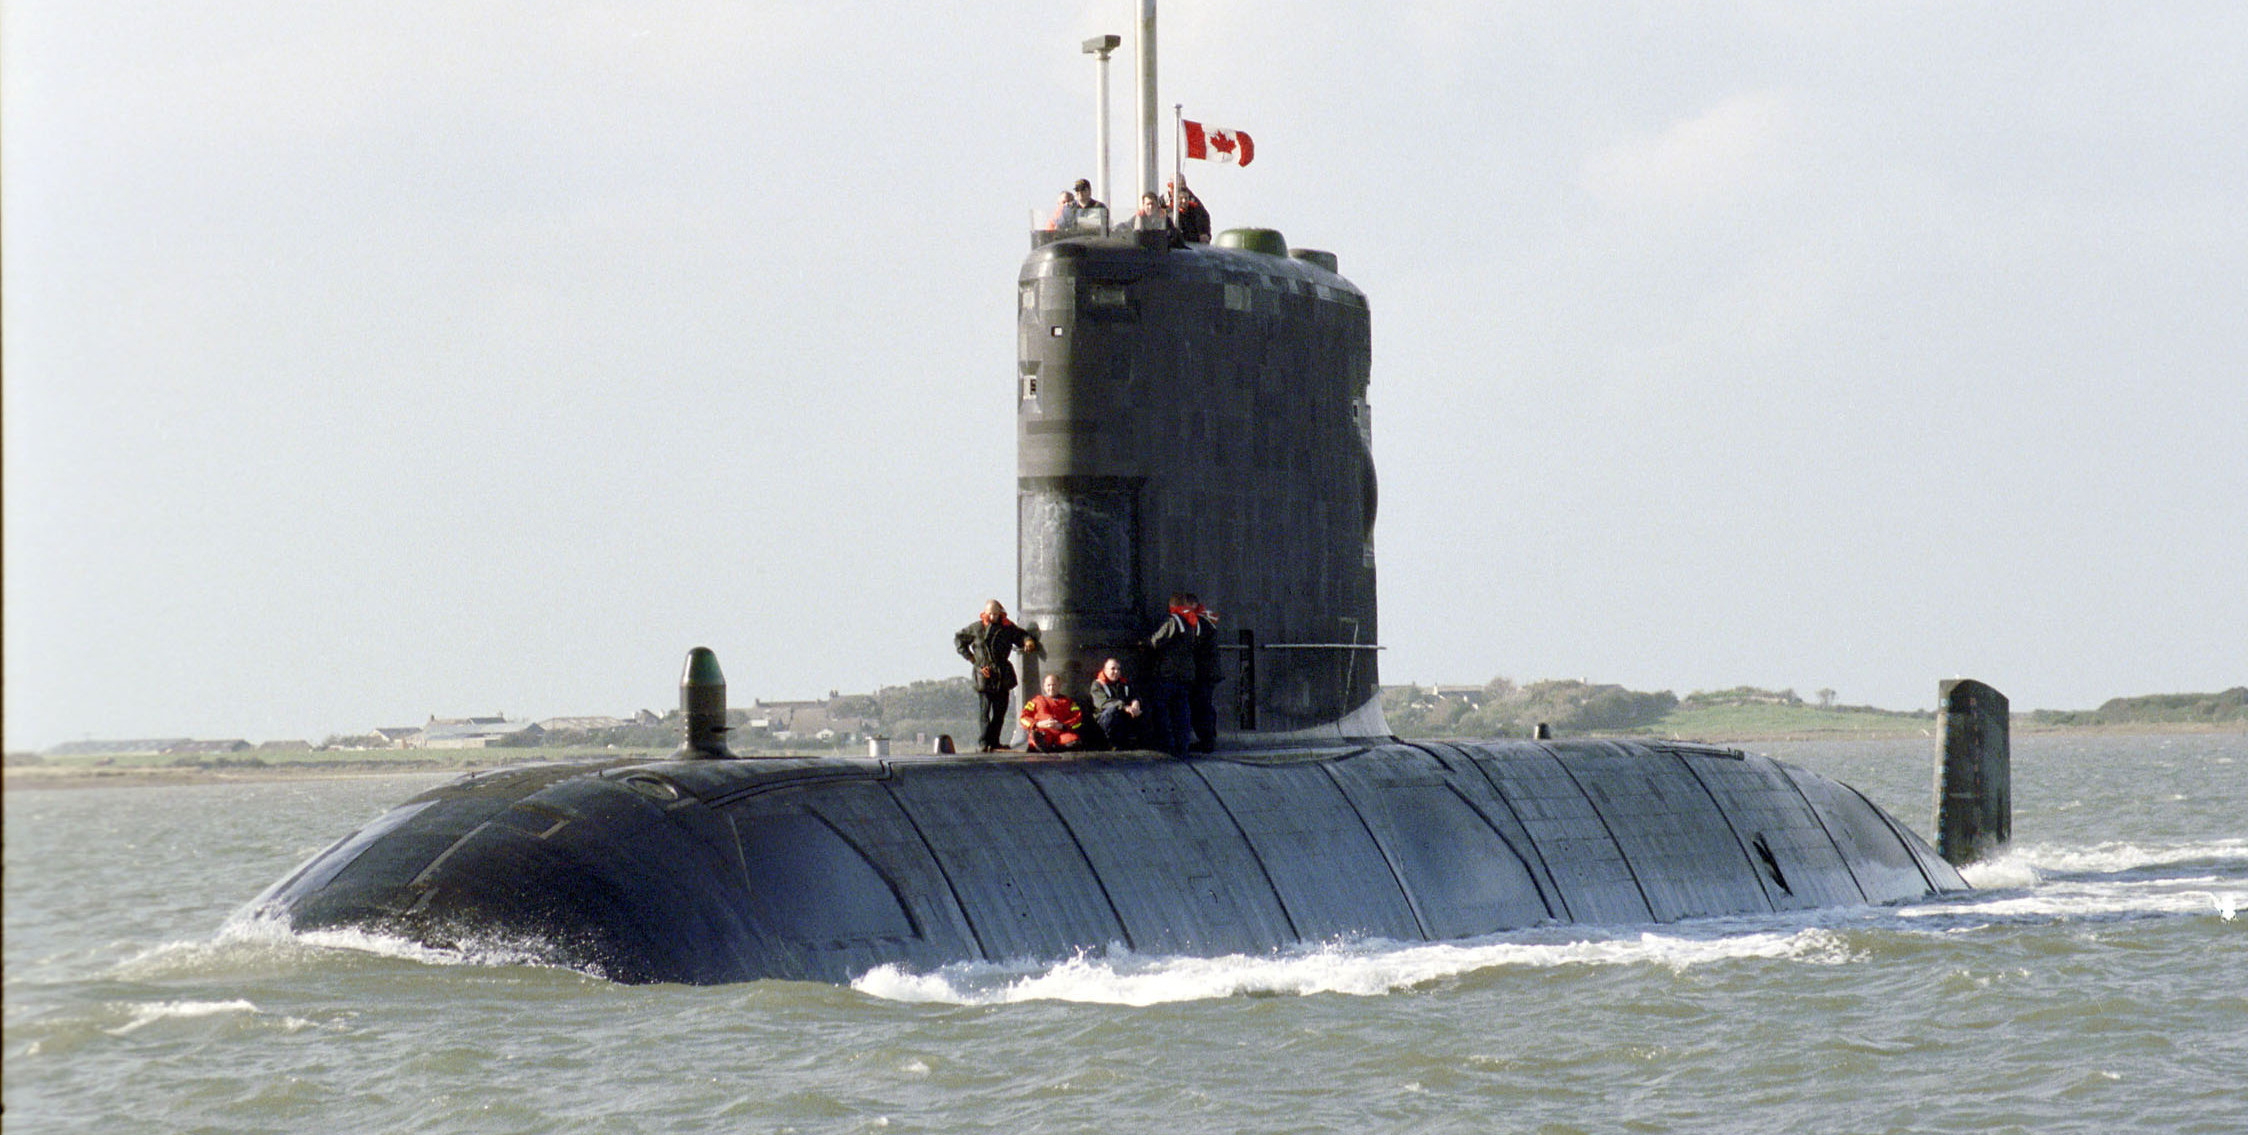 """""""The Deal of the Century"""": Canada's Problematic Submarines in Historical Perspective by Dr. Paul T. Mitchell"""